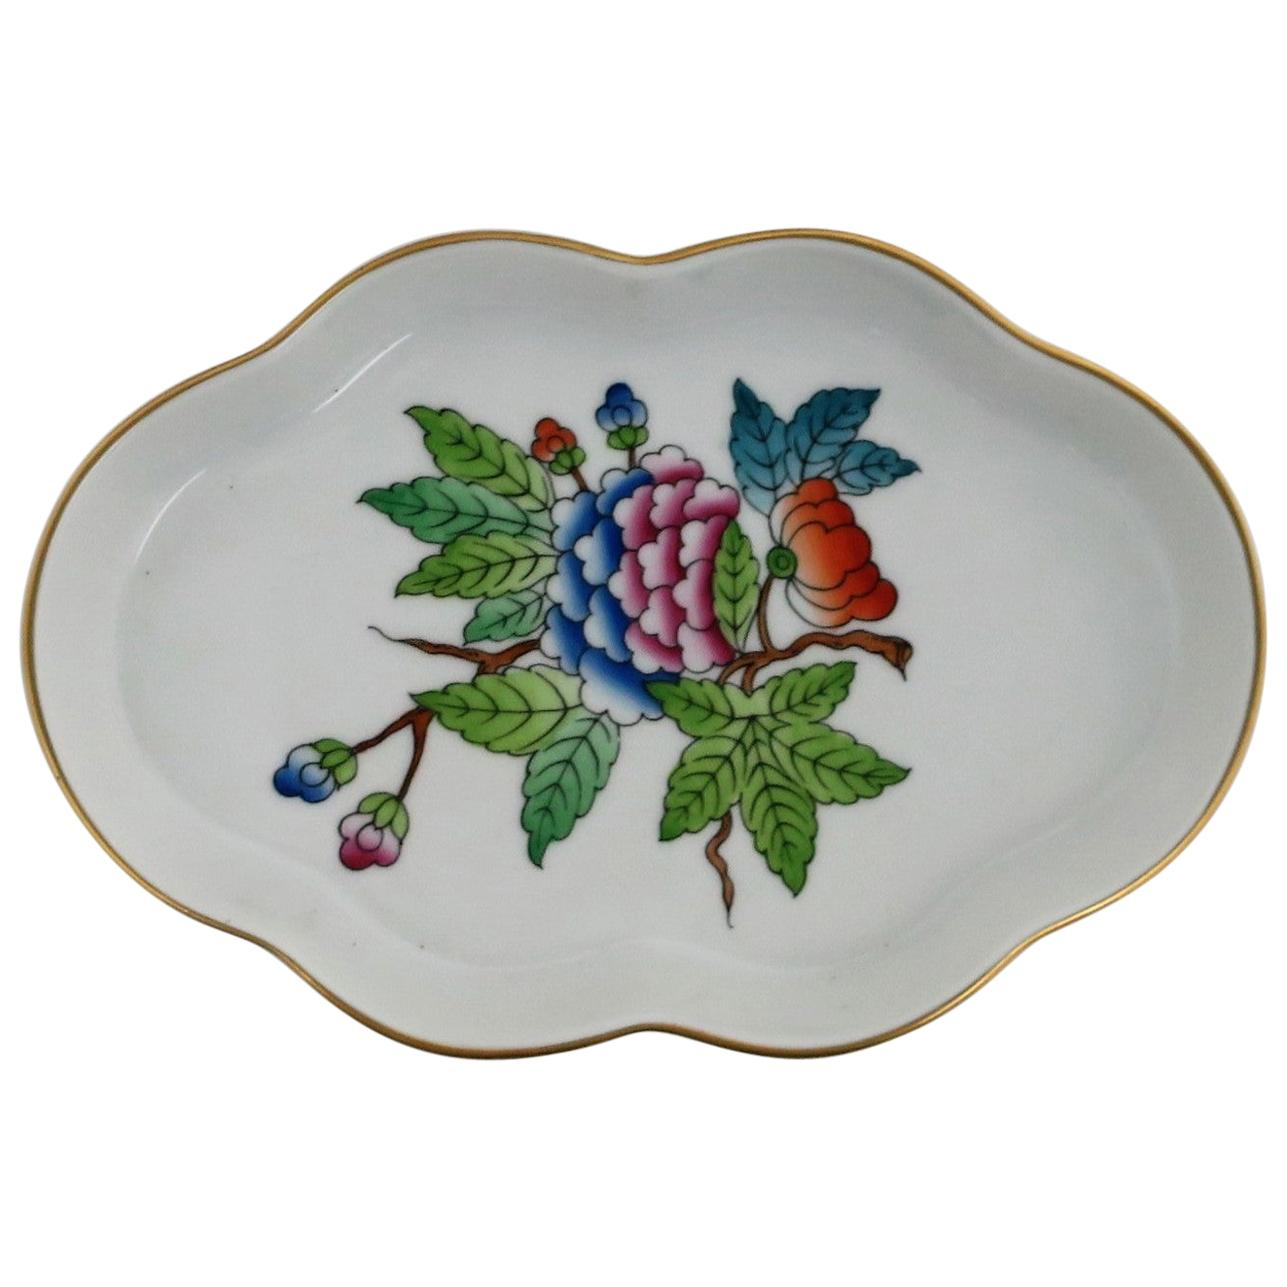 Herend Hungary Porcelain Jewelry Dish